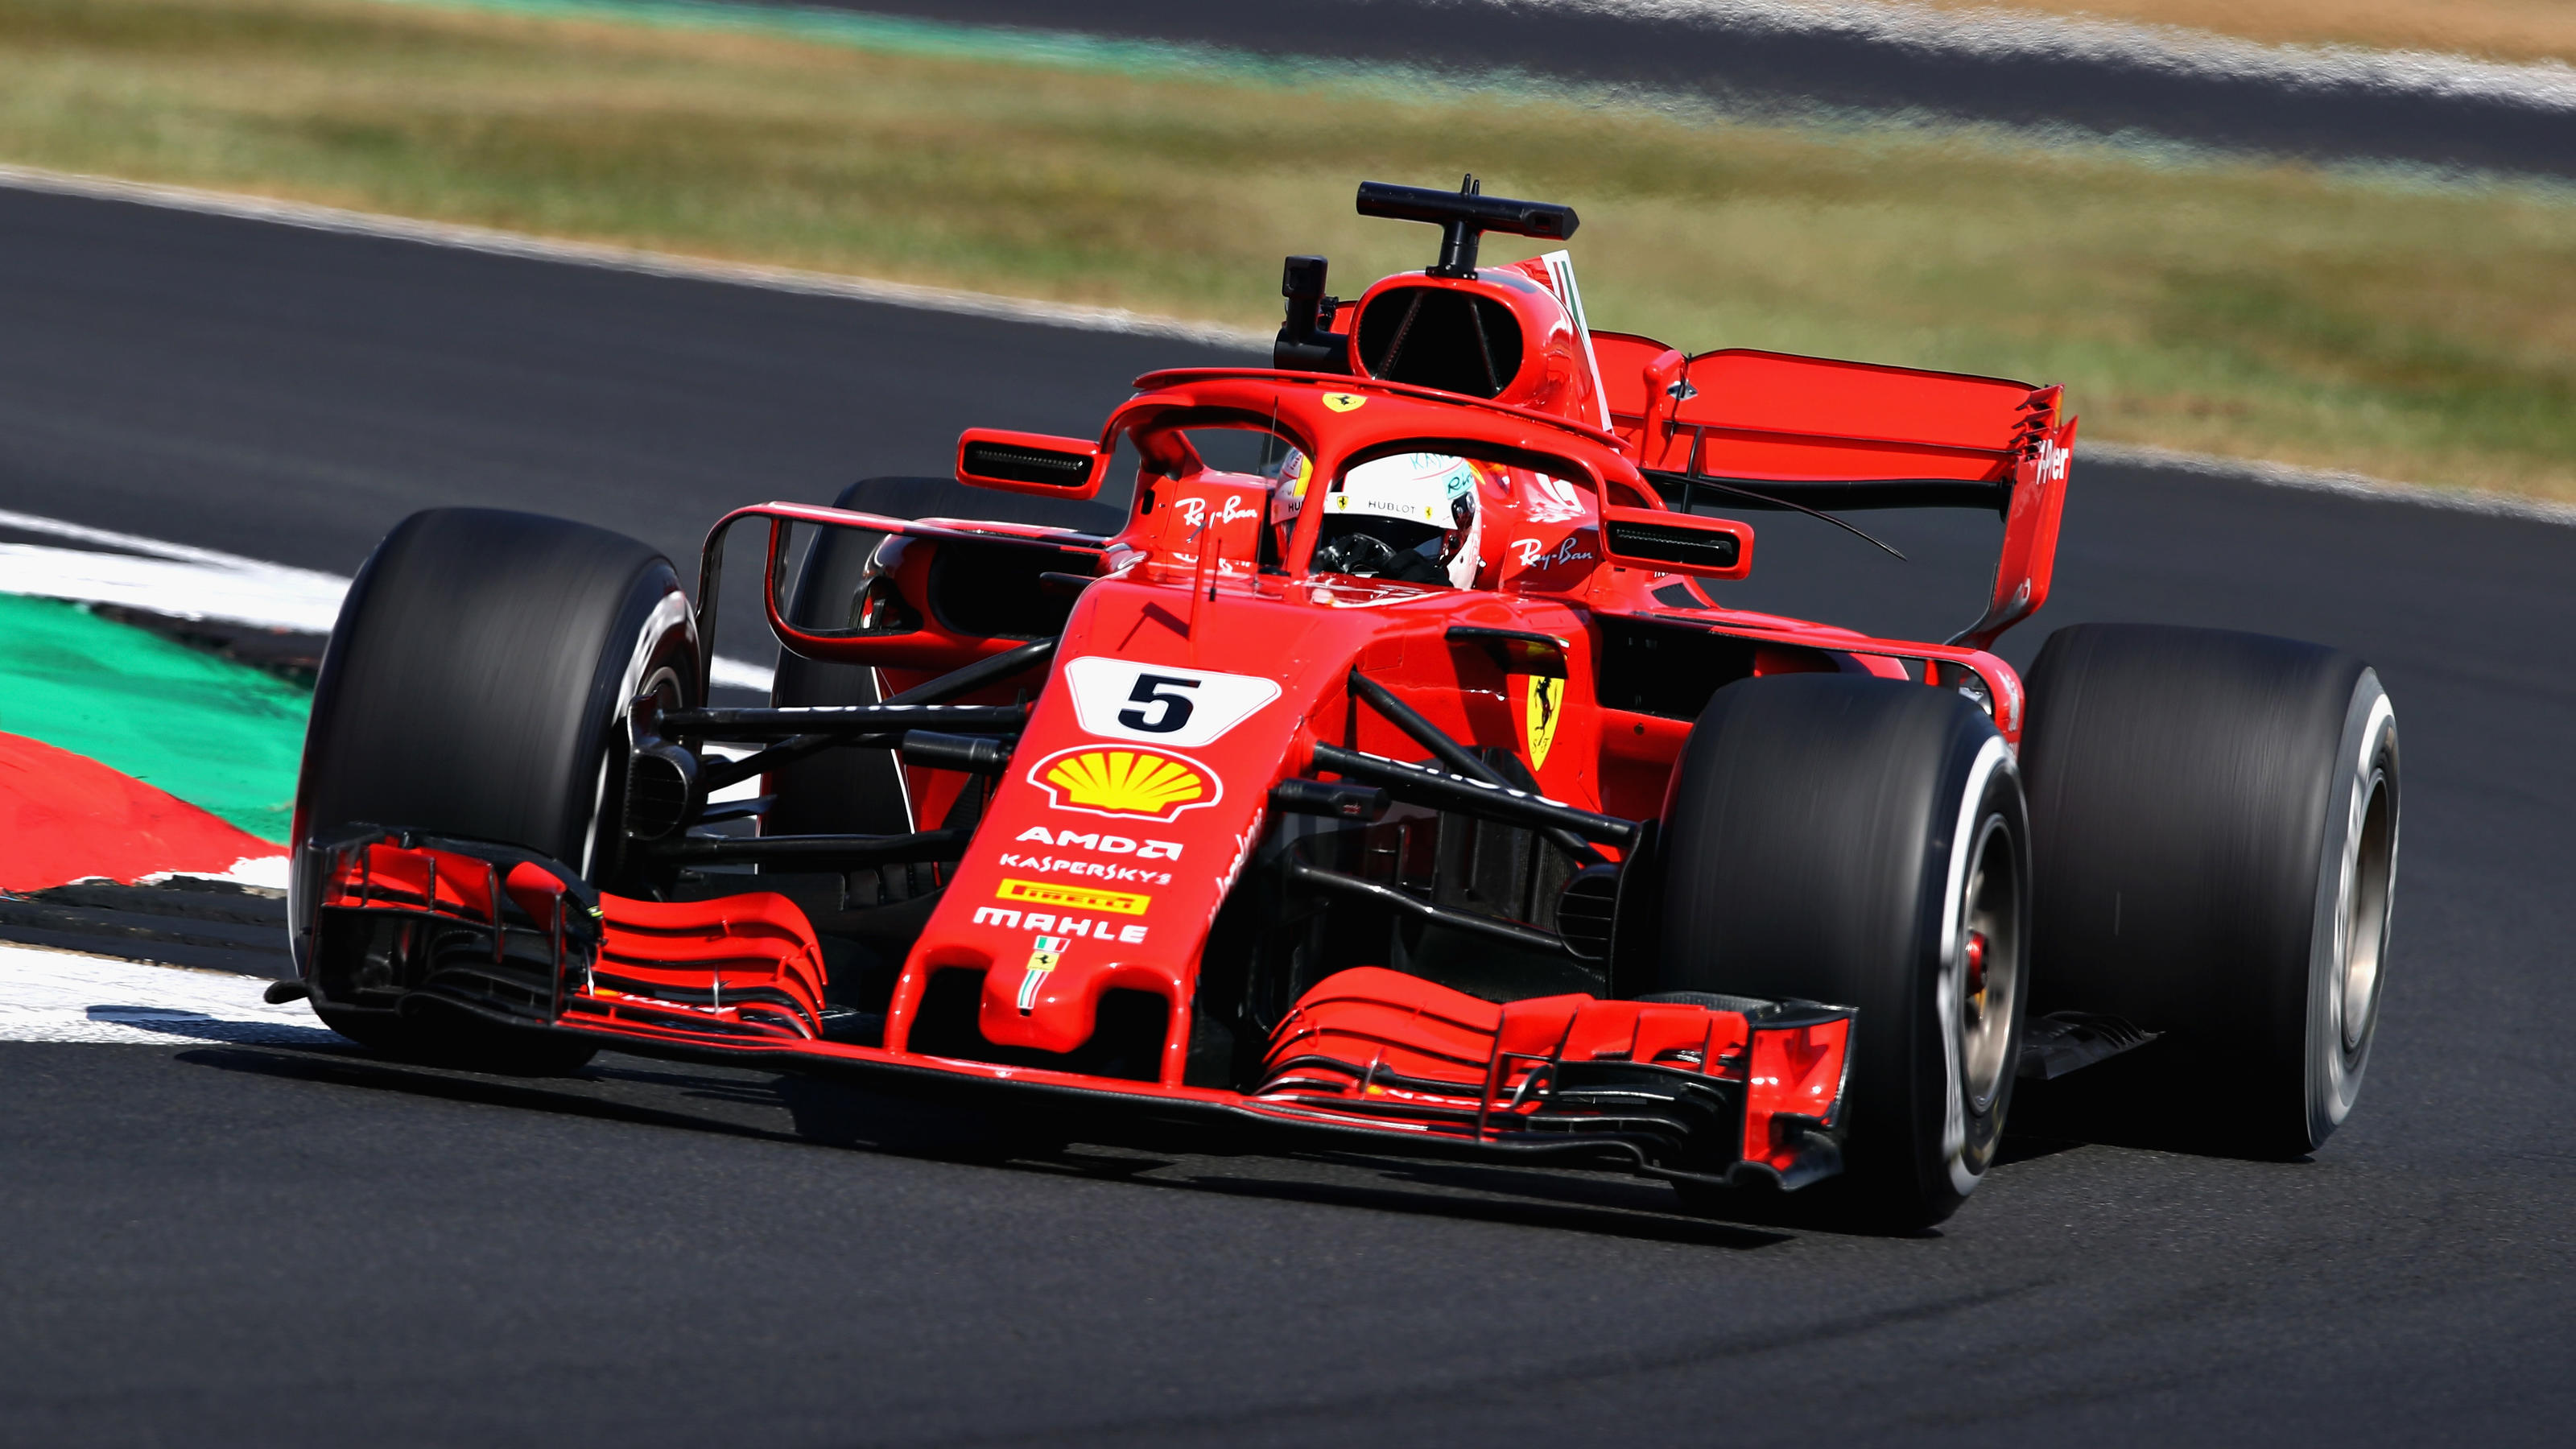 NORTHAMPTON, ENGLAND - JULY 06: Sebastian Vettel of Germany driving the (5) Scuderia Ferrari SF71H on track during practice for the Formula One Grand Prix of Great Britain at Silverstone on July 6, 2018 in Northampton, England.  (Photo by Mark Thomps